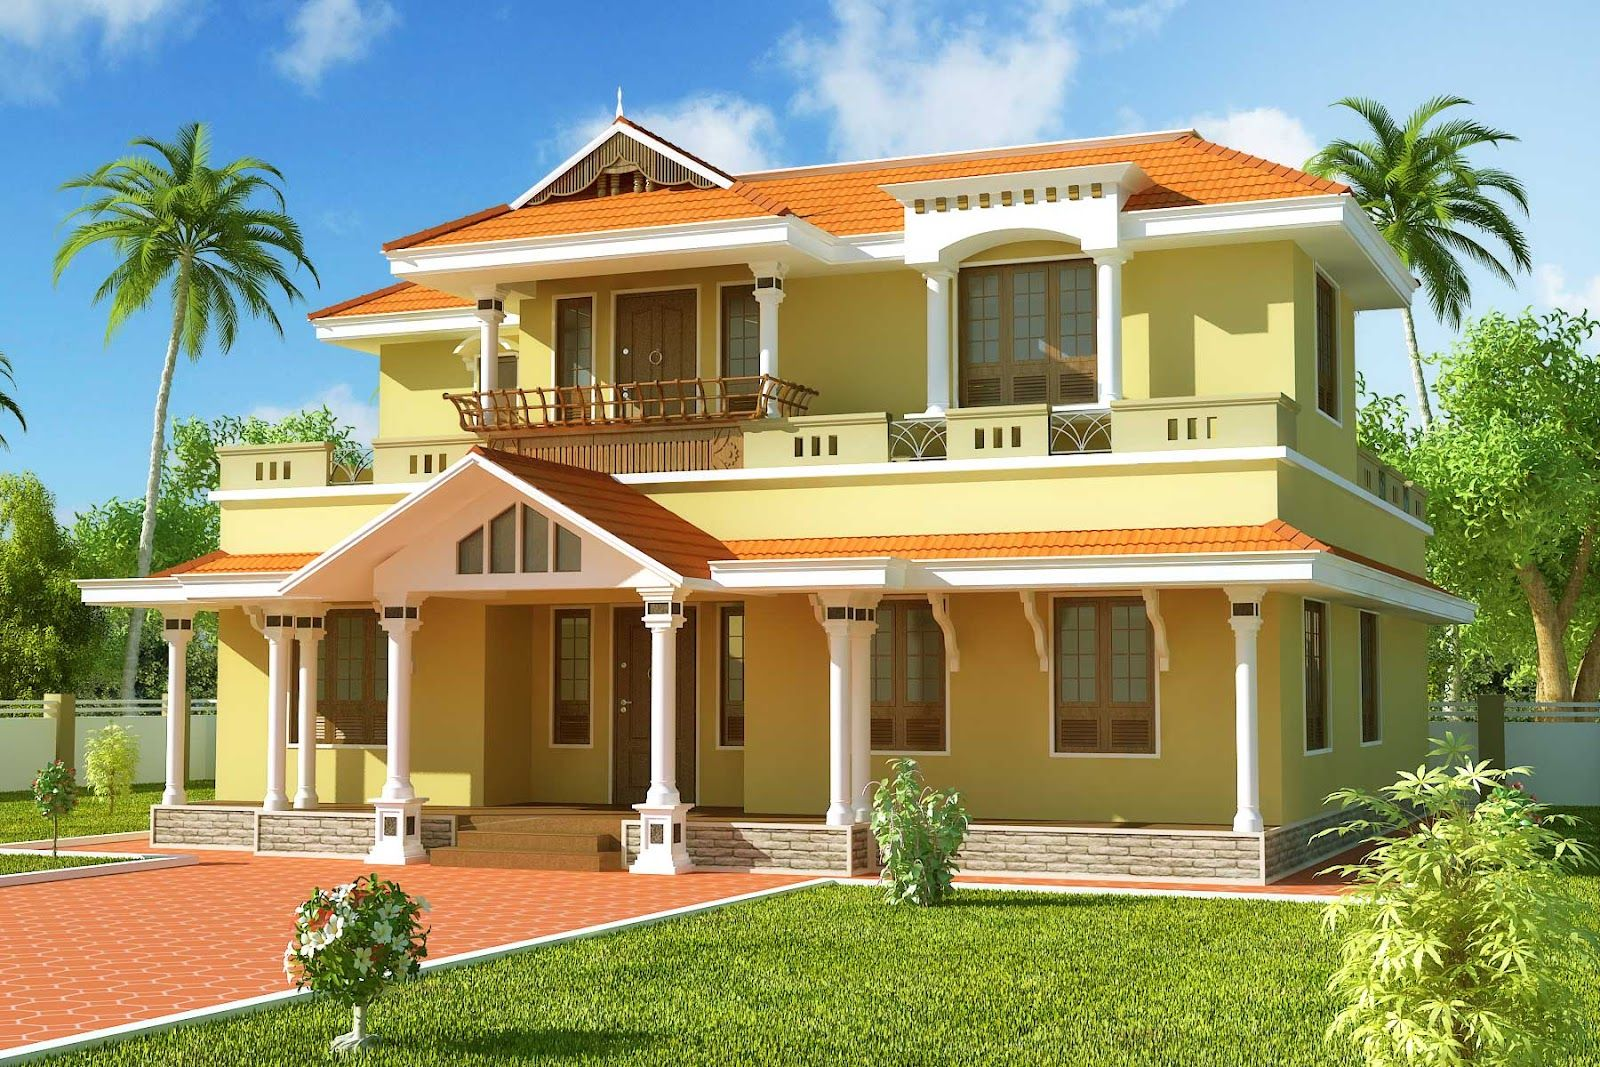 Architecture Design Kerala Model home design | beautiful indian home designs | pinterest | kerala